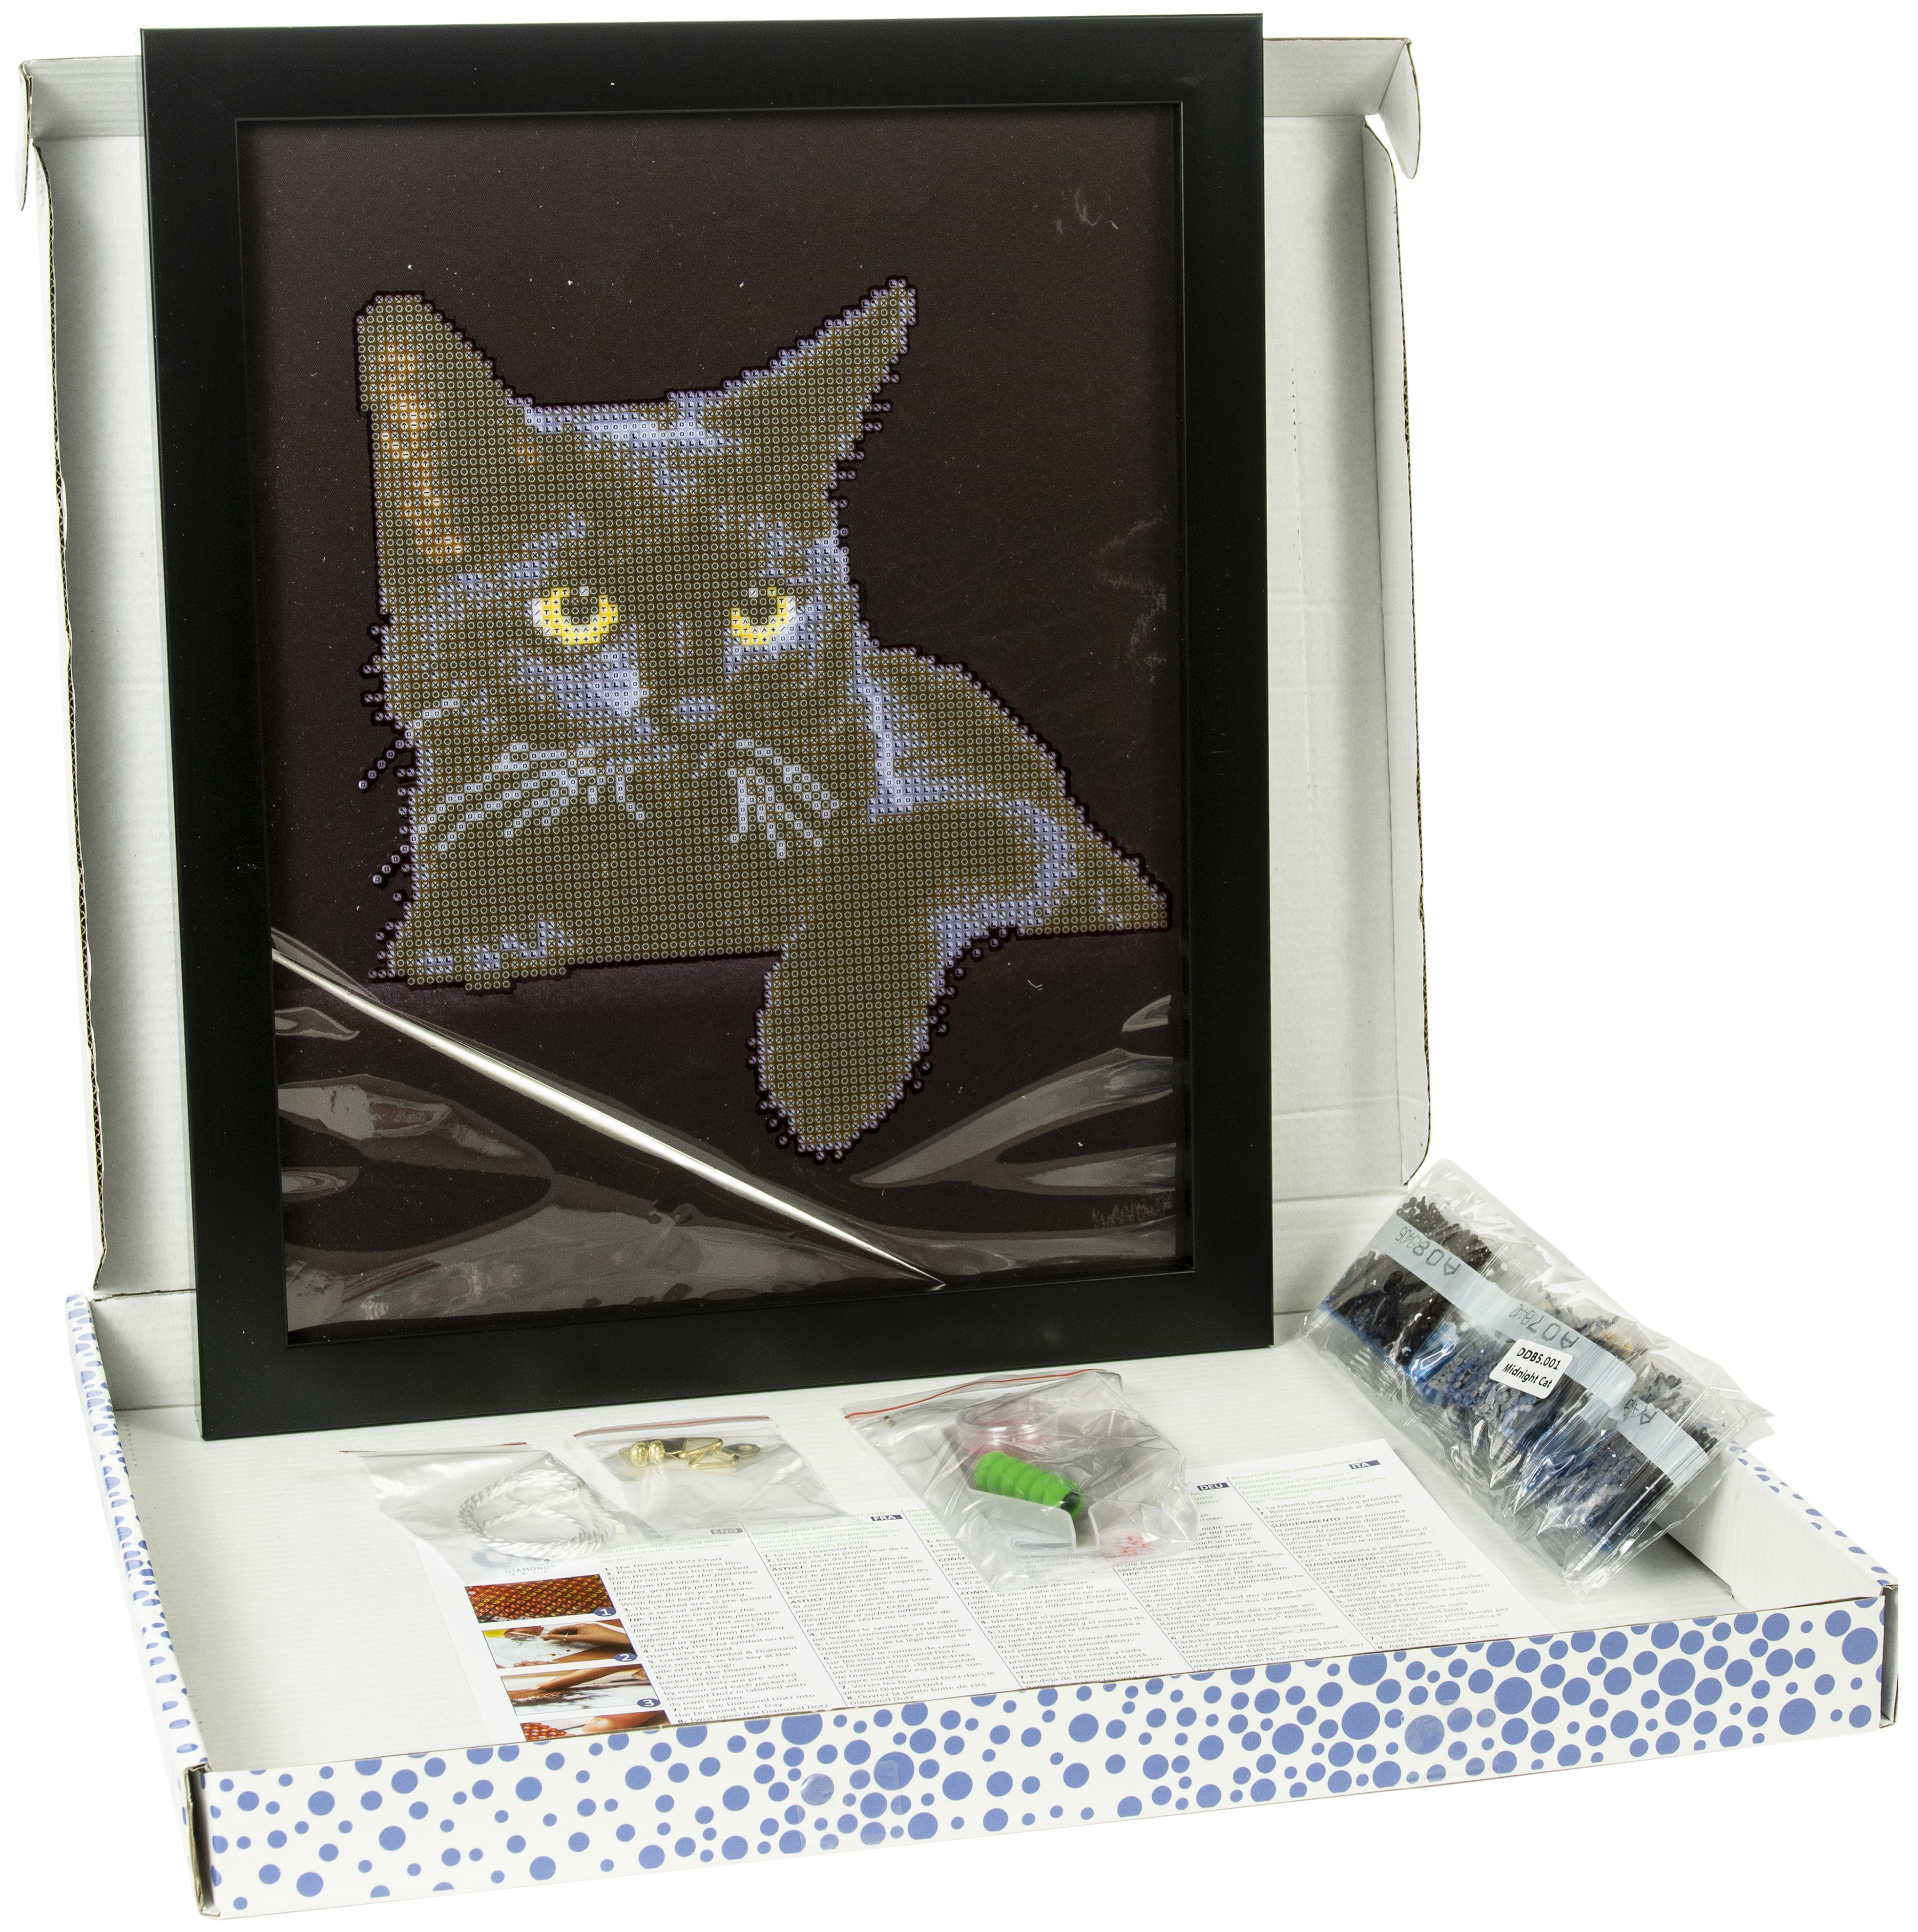 Diamond Dotz Diamond Embroidery Facet Art Kit W/ Frame-Midnight Cat